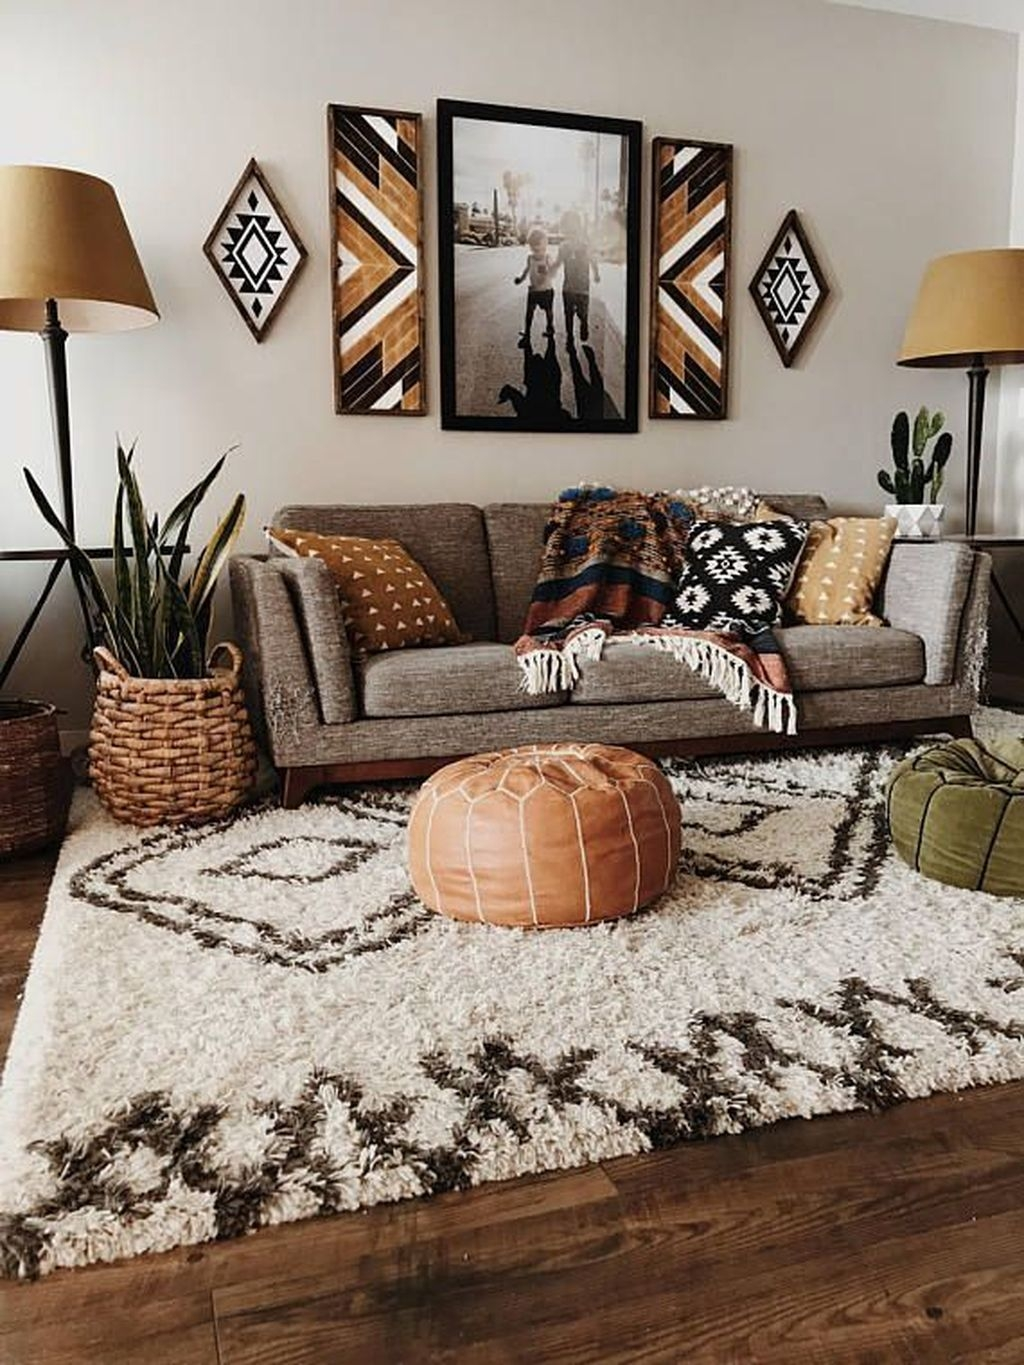 Perfect Apartment Living Room Decor Ideas On A Budget09